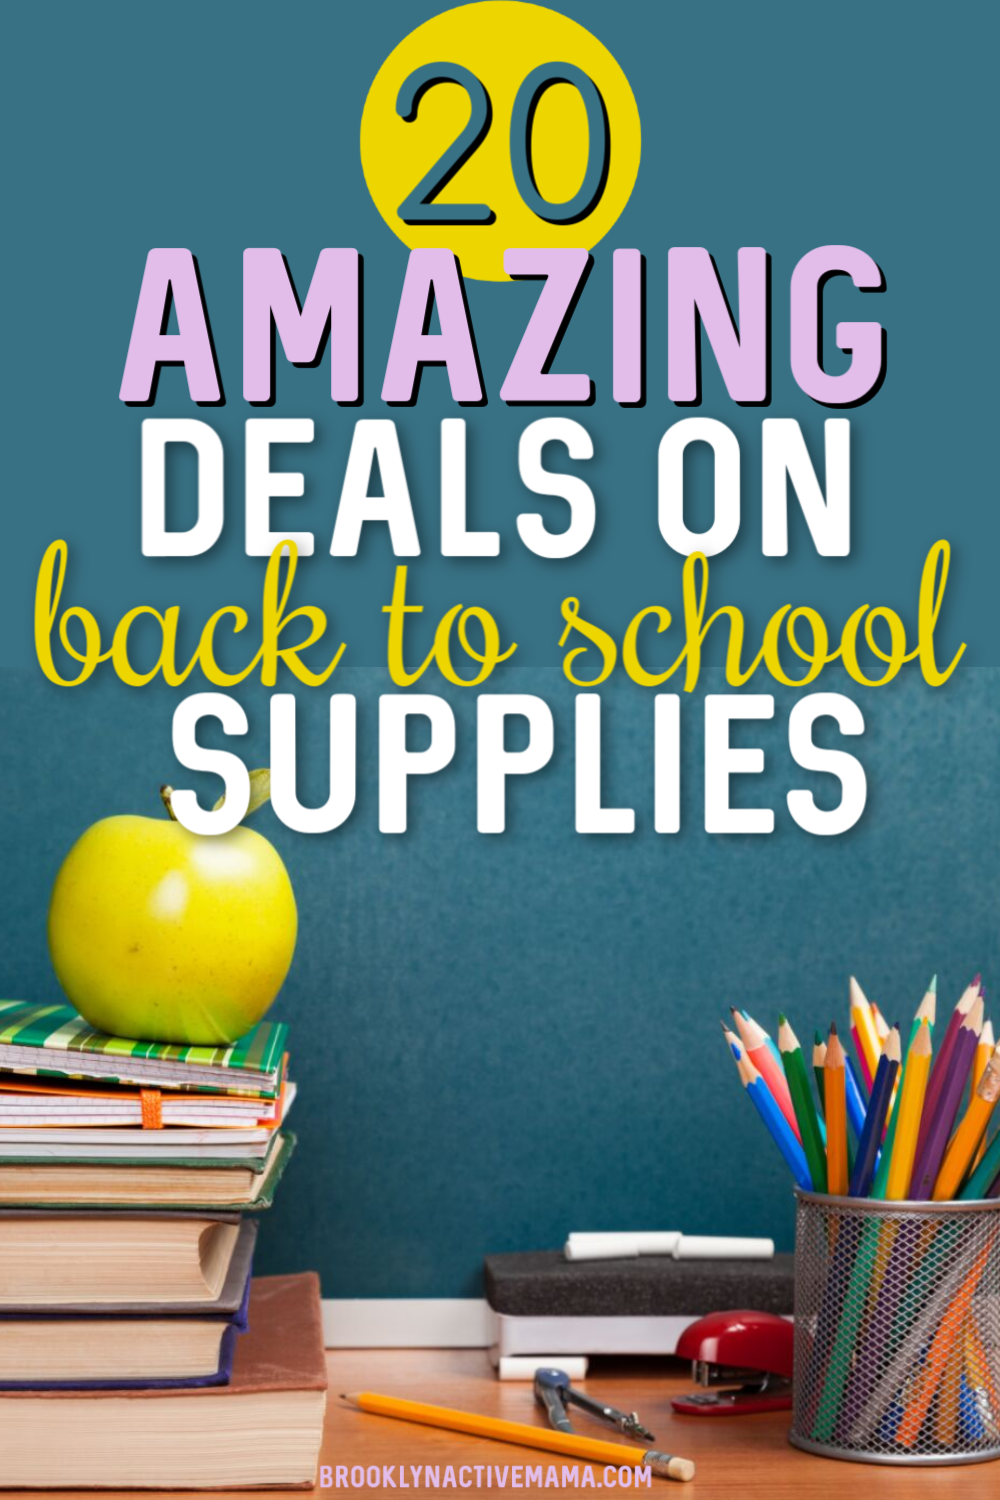 Shopping for back to school supplies can get expensive really quickly! Check out these 20 deals on back to school supplies that you can't miss! #backtoschool #backtoschoolsupplies